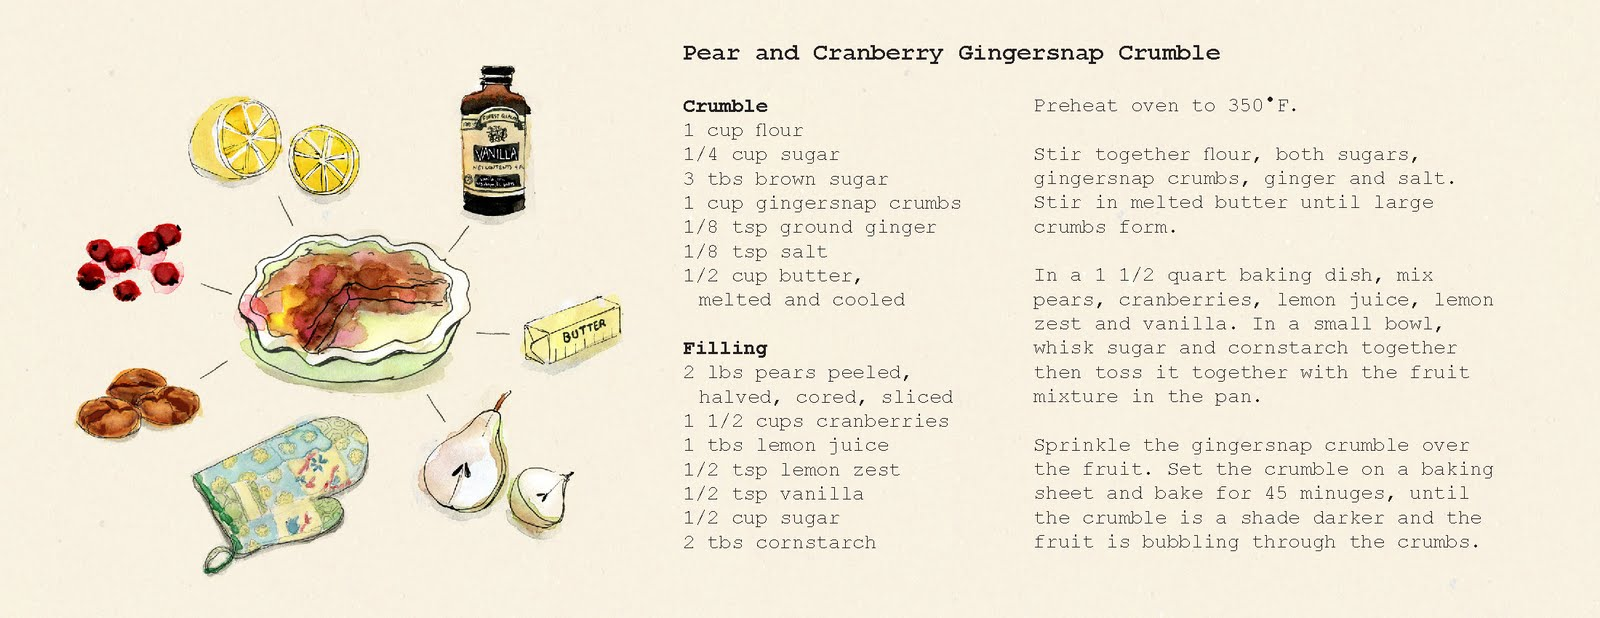 cranberries pears cranberry gingersnap gingersnap crumble pear and ...